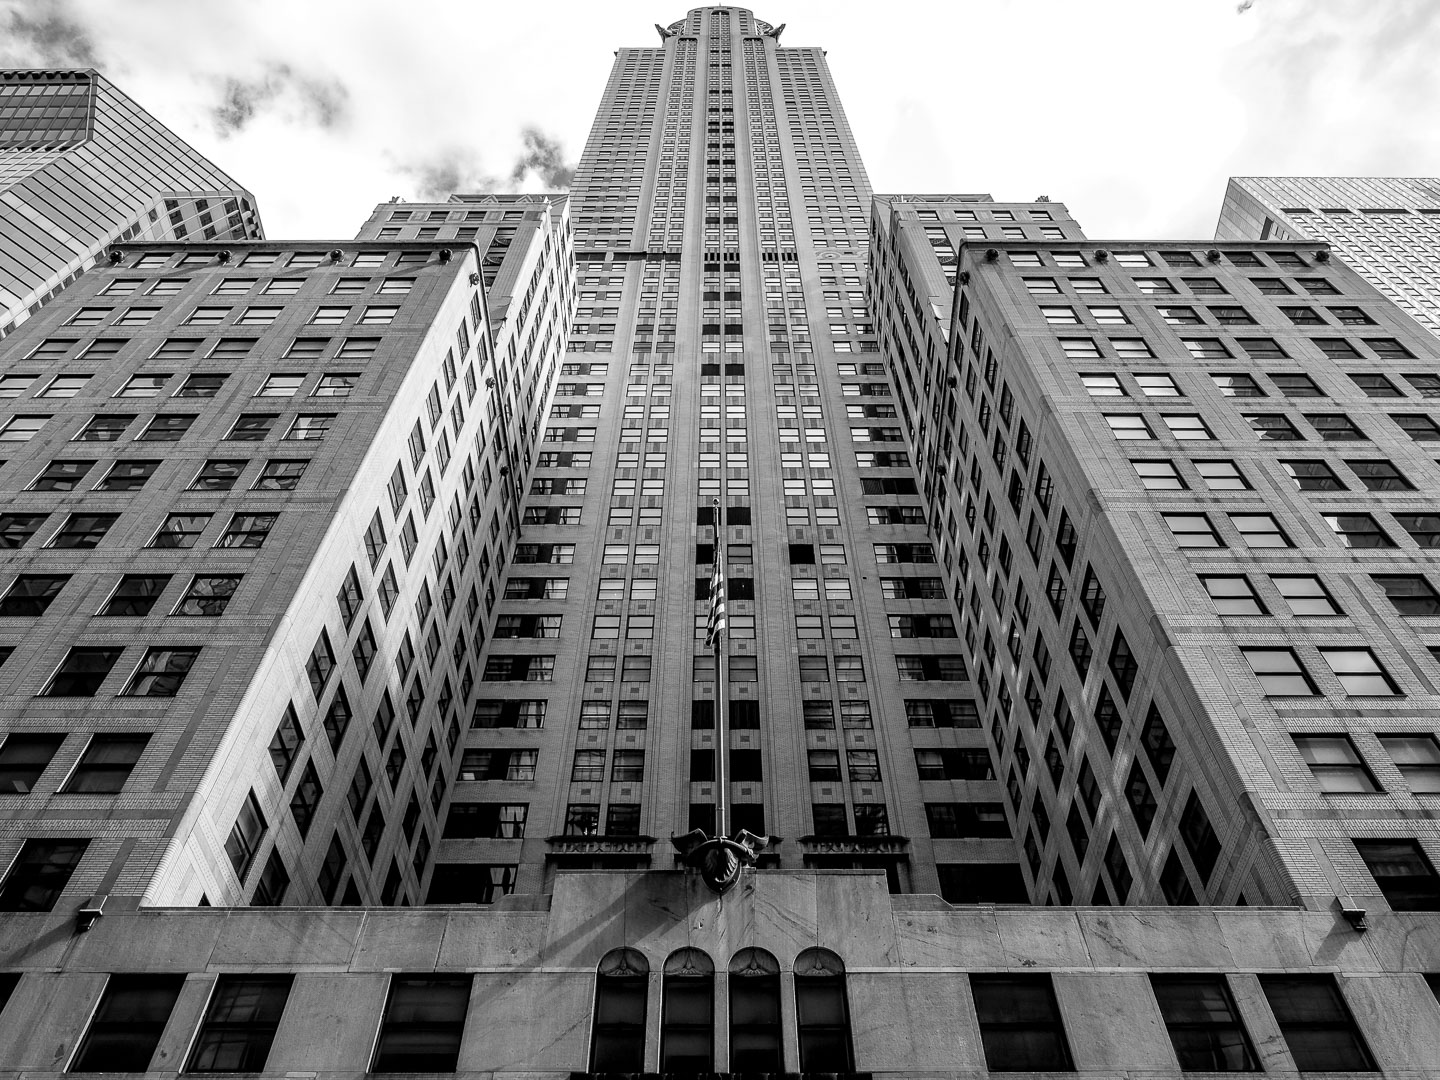 Looking up the Chrysler Building